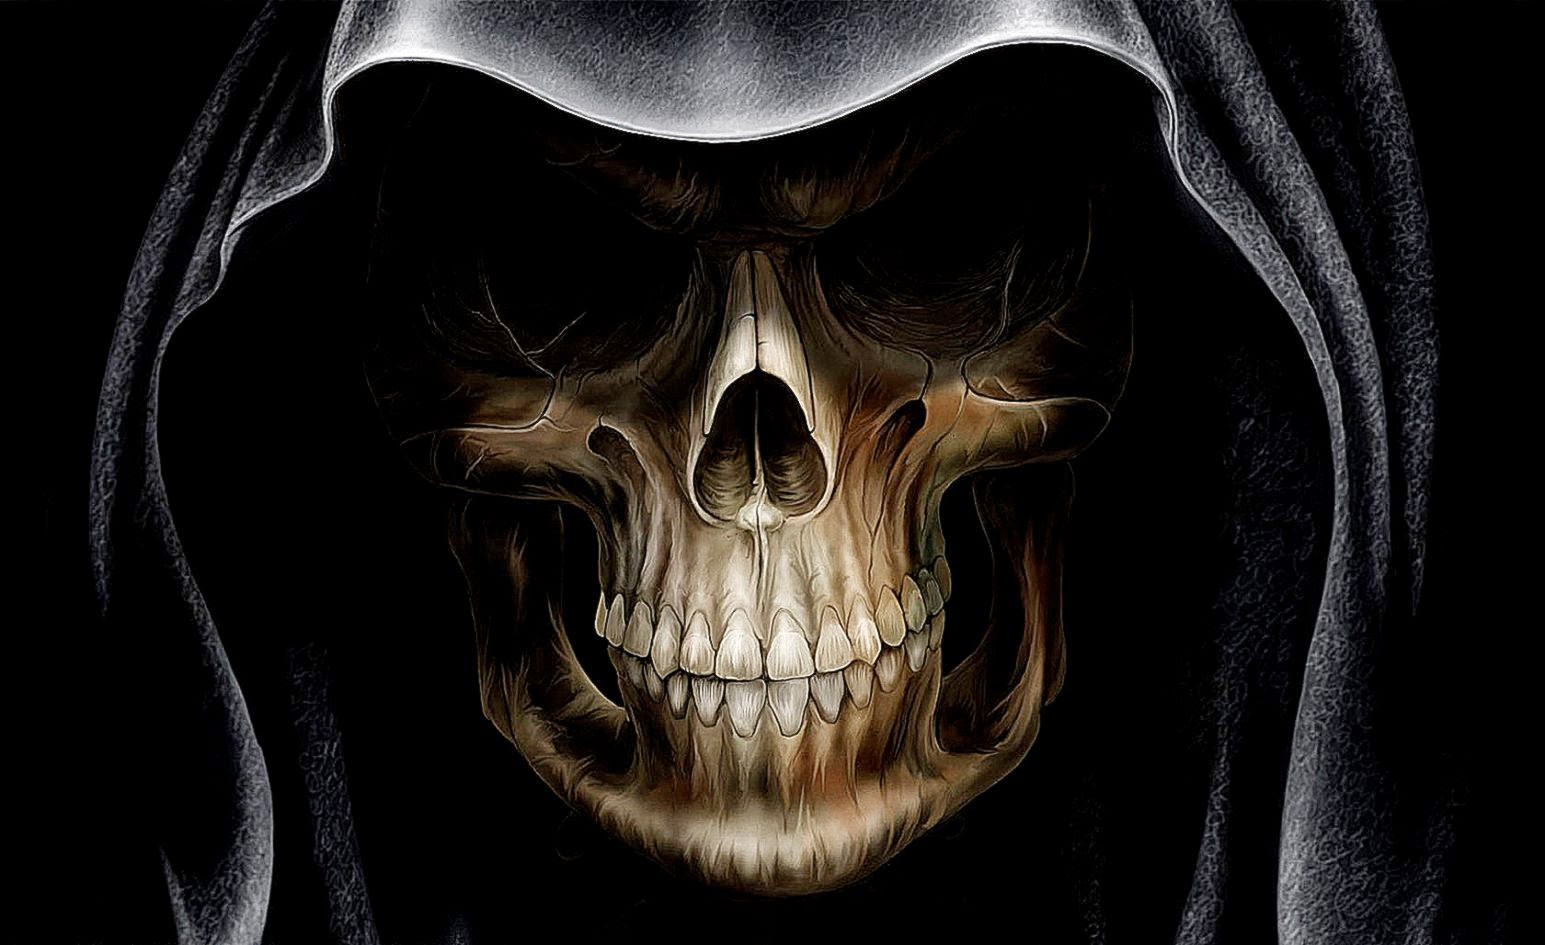 Skull Hd Wallpapers Cool HD Wallpapers 1545x945